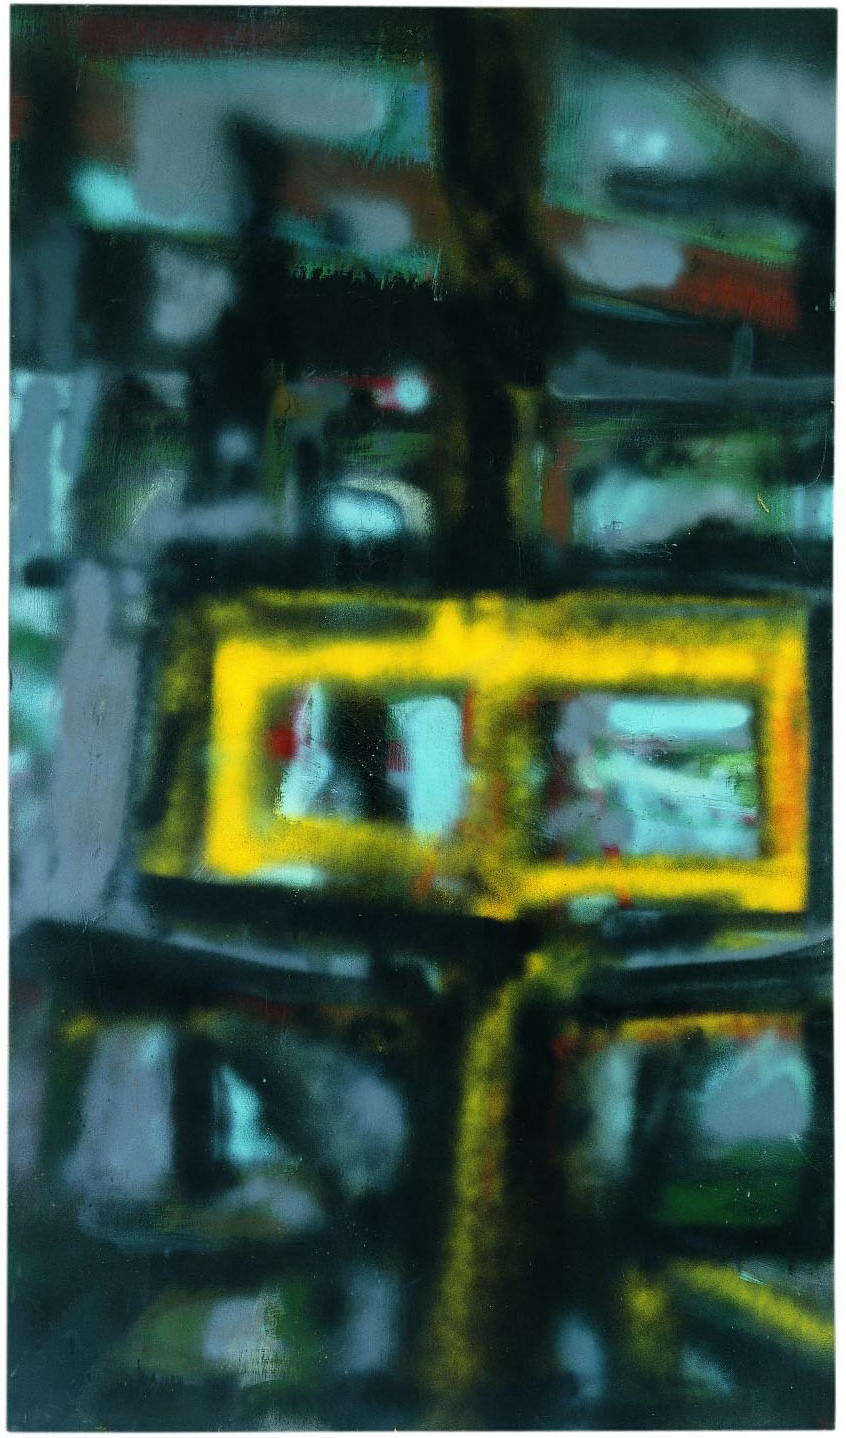 Hedda Sterne,  N.Y. 1  ( Road #4 ), 1956, Oil, spray paint on canvas, 86 x 50 in.; Collection of the Krannert Art Museum and Kinkead Pavilion, University of Illinois at Urbana-Champaign; Gift of the artist, 2006-3-1